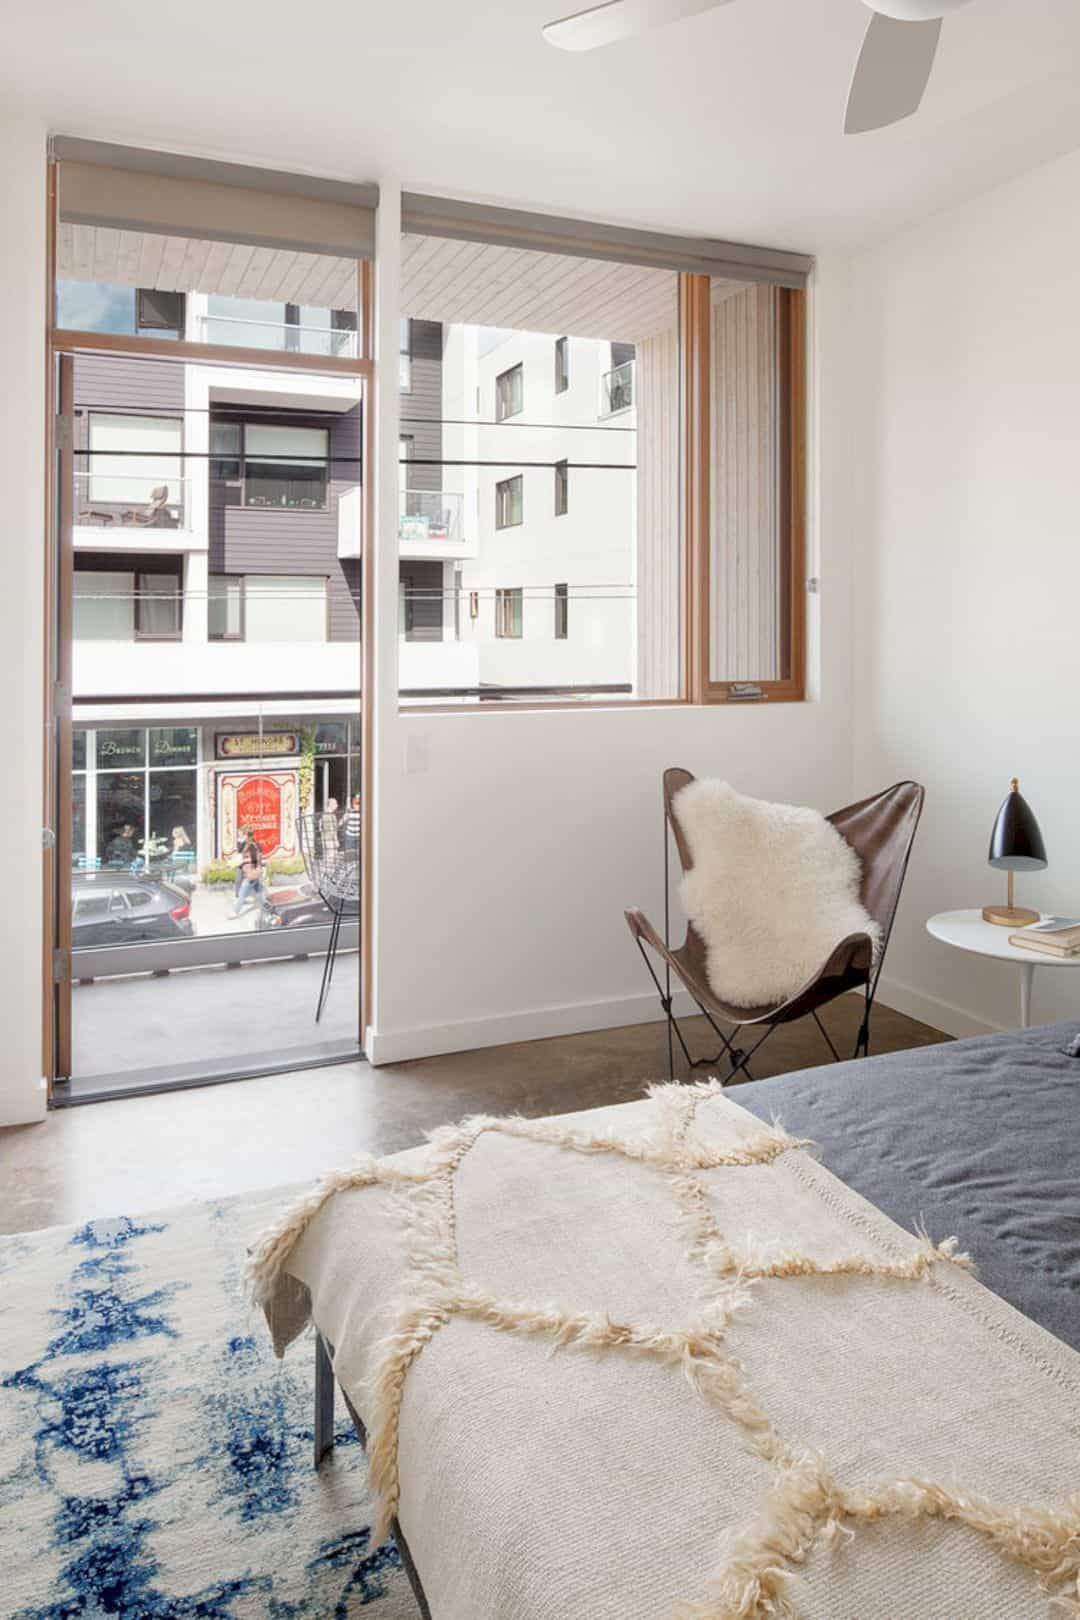 Courtyard Housing OneBedroom and Studio Apartments with